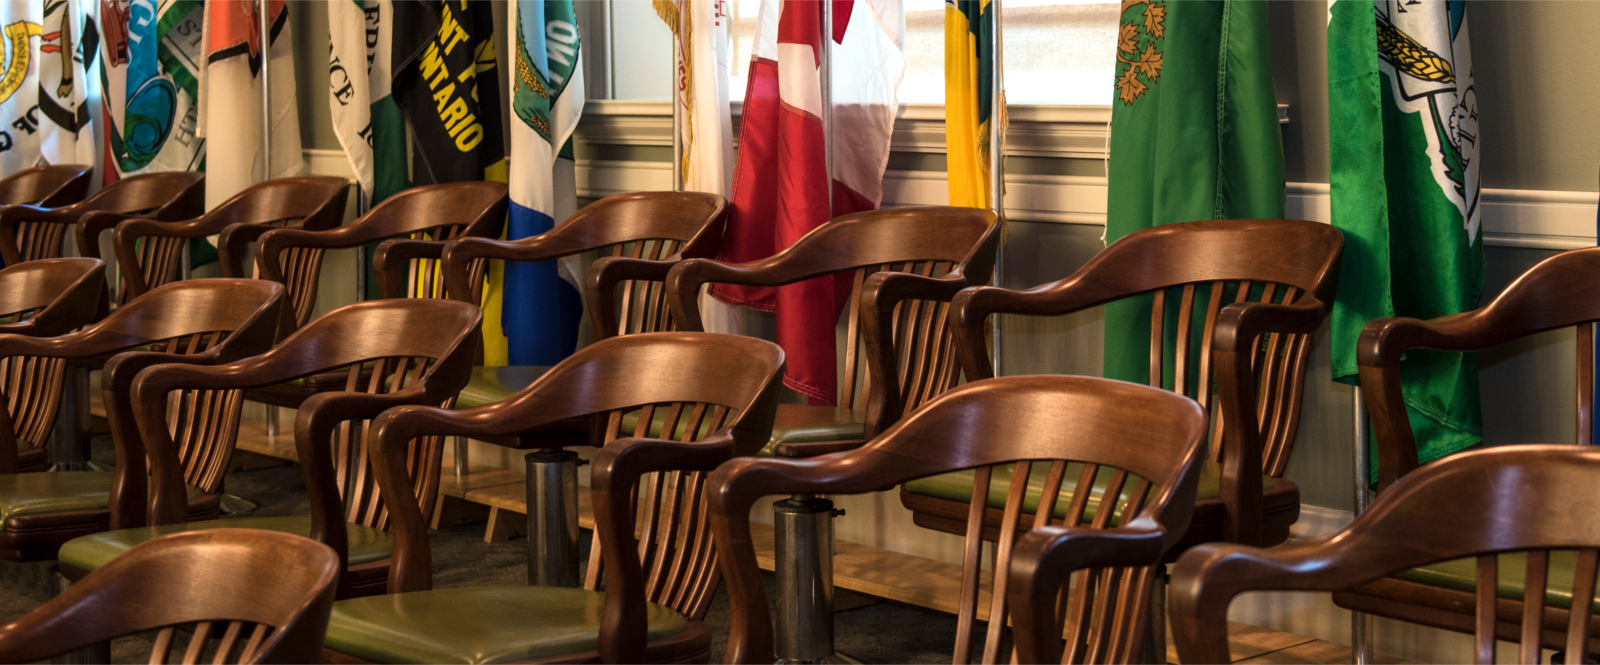 Wooden armchairs and municipal flags